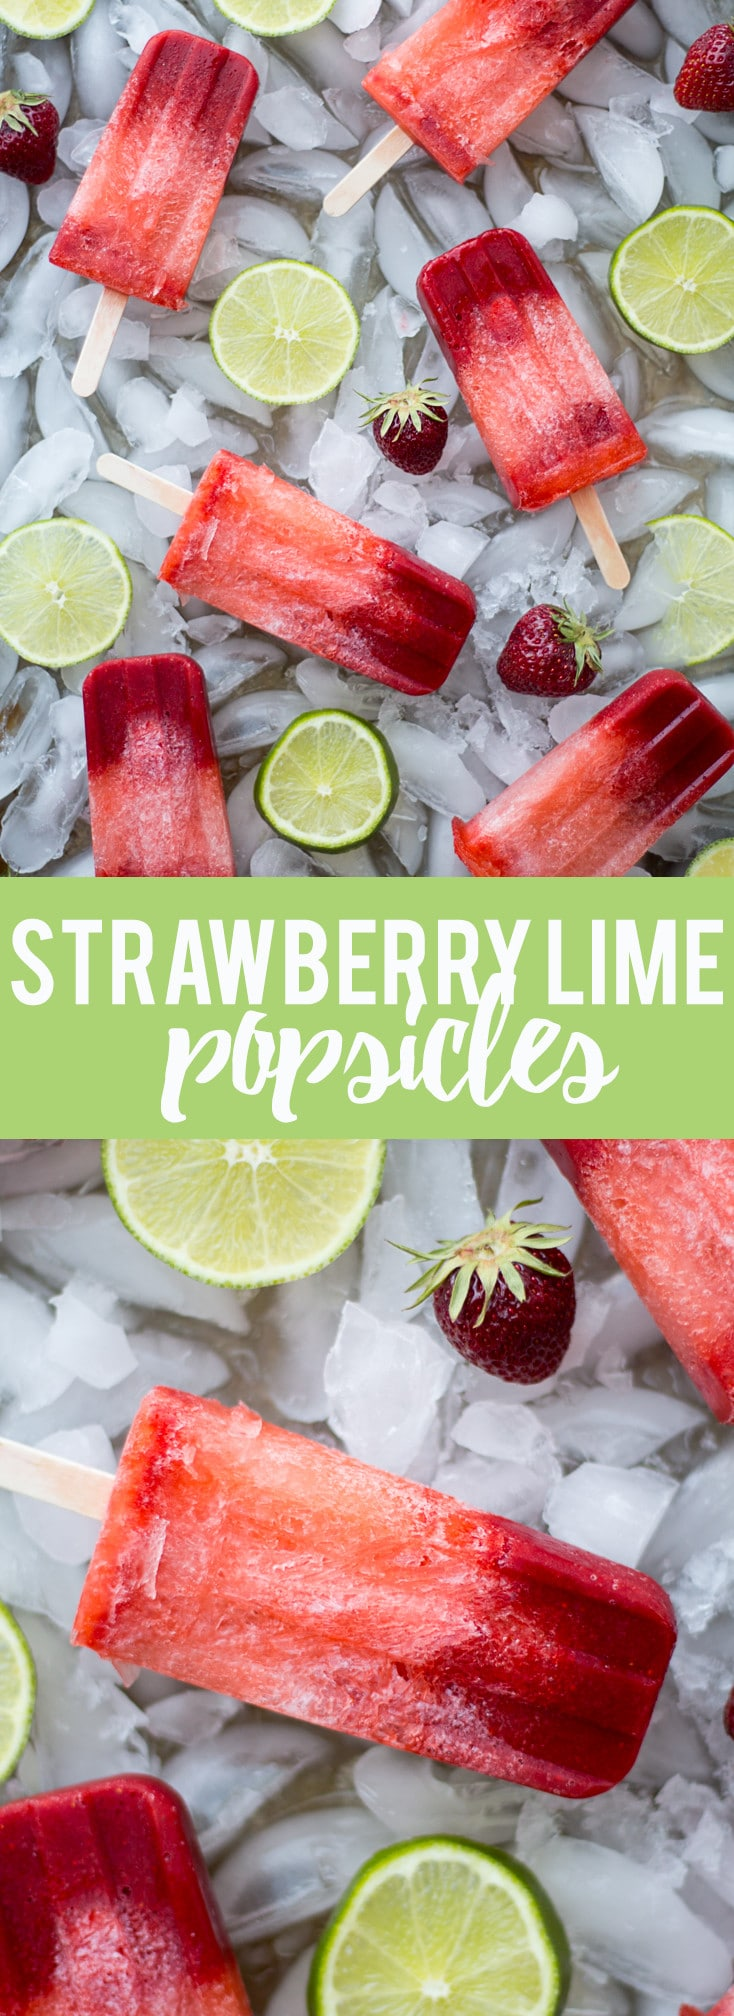 These Strawberry Lime Popsicles are easy to make and require only three ingredients! Whip up this simple recipe and have a cool treat on a hot day.